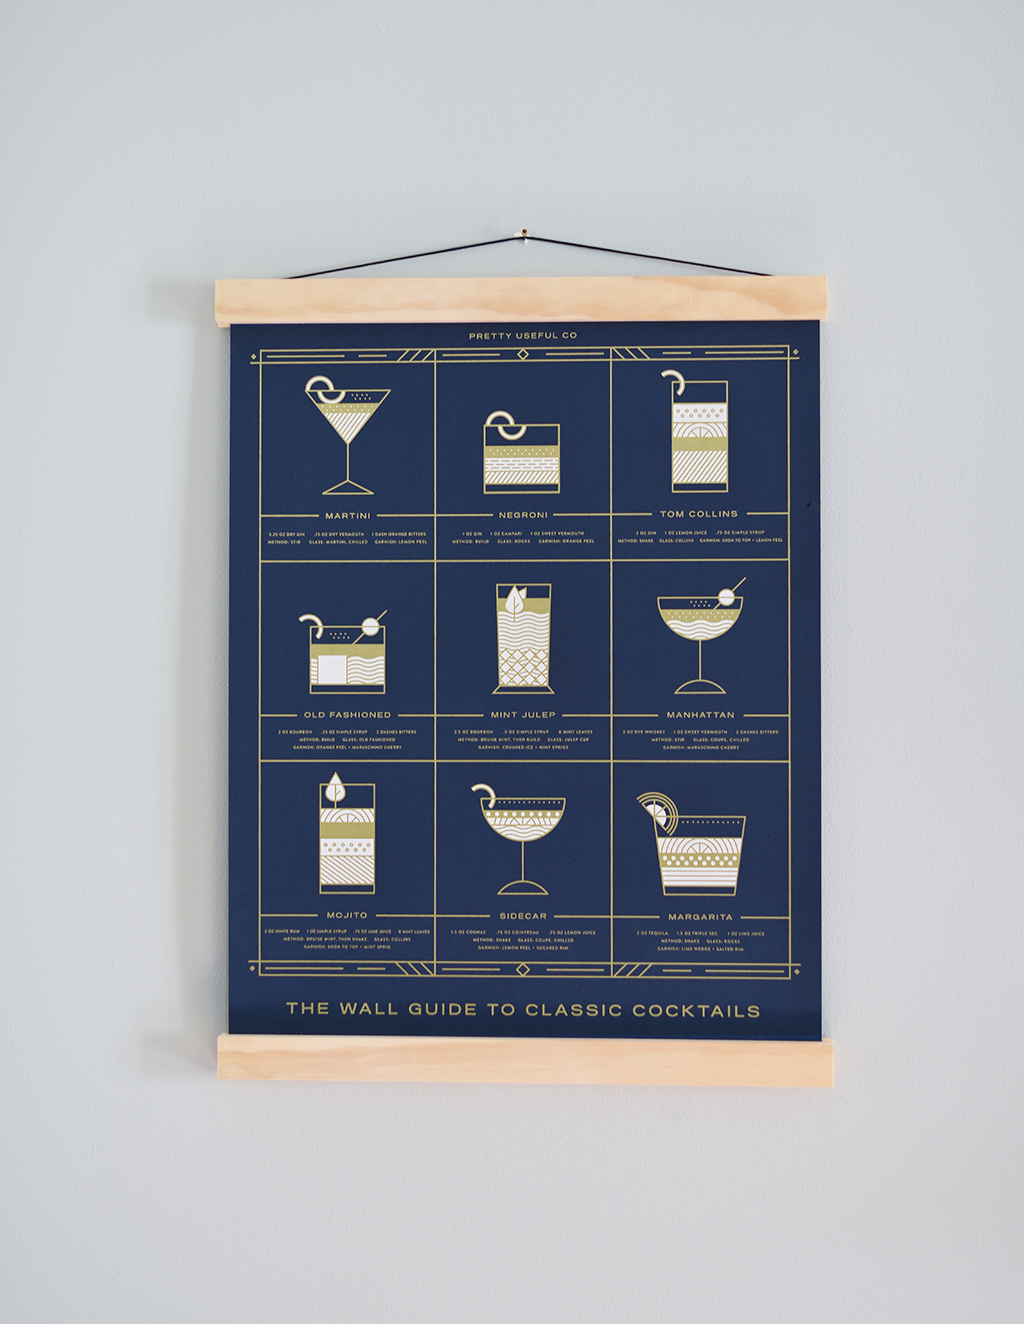 The Wall Guide to Cocktails